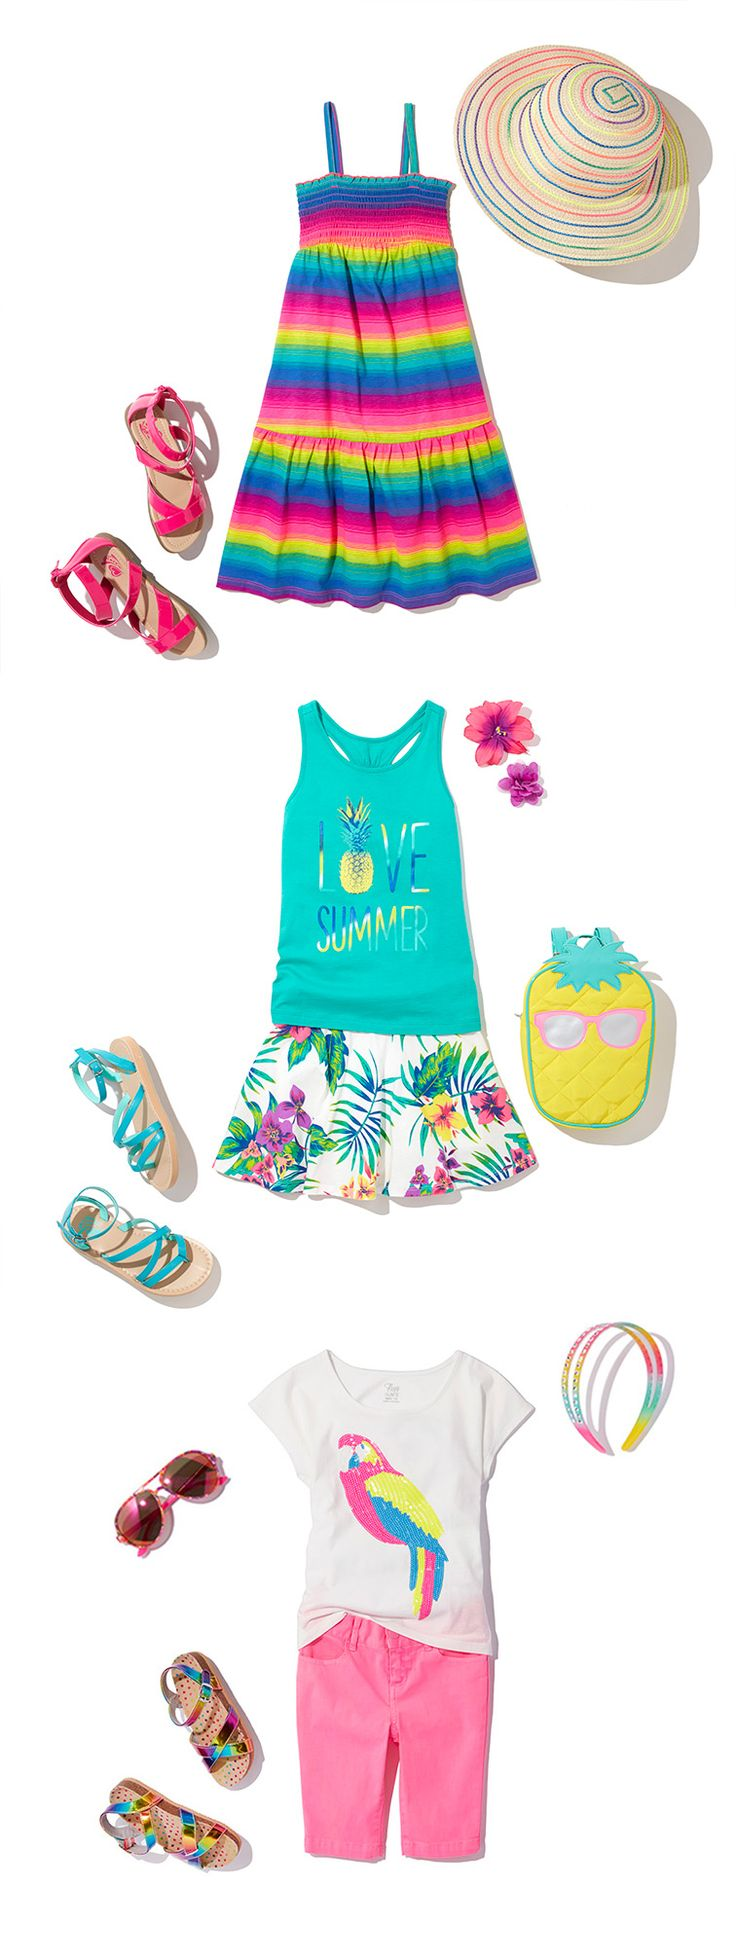 Girls Clothing   Kids' Outfits   Rainbow Dress   Rainbow Hat   Graphic Tanktop   Graphic Tee   Skimmer Shorts   Printed Shorts   Sandals   Sunglasses   Vacation   The Children's Place